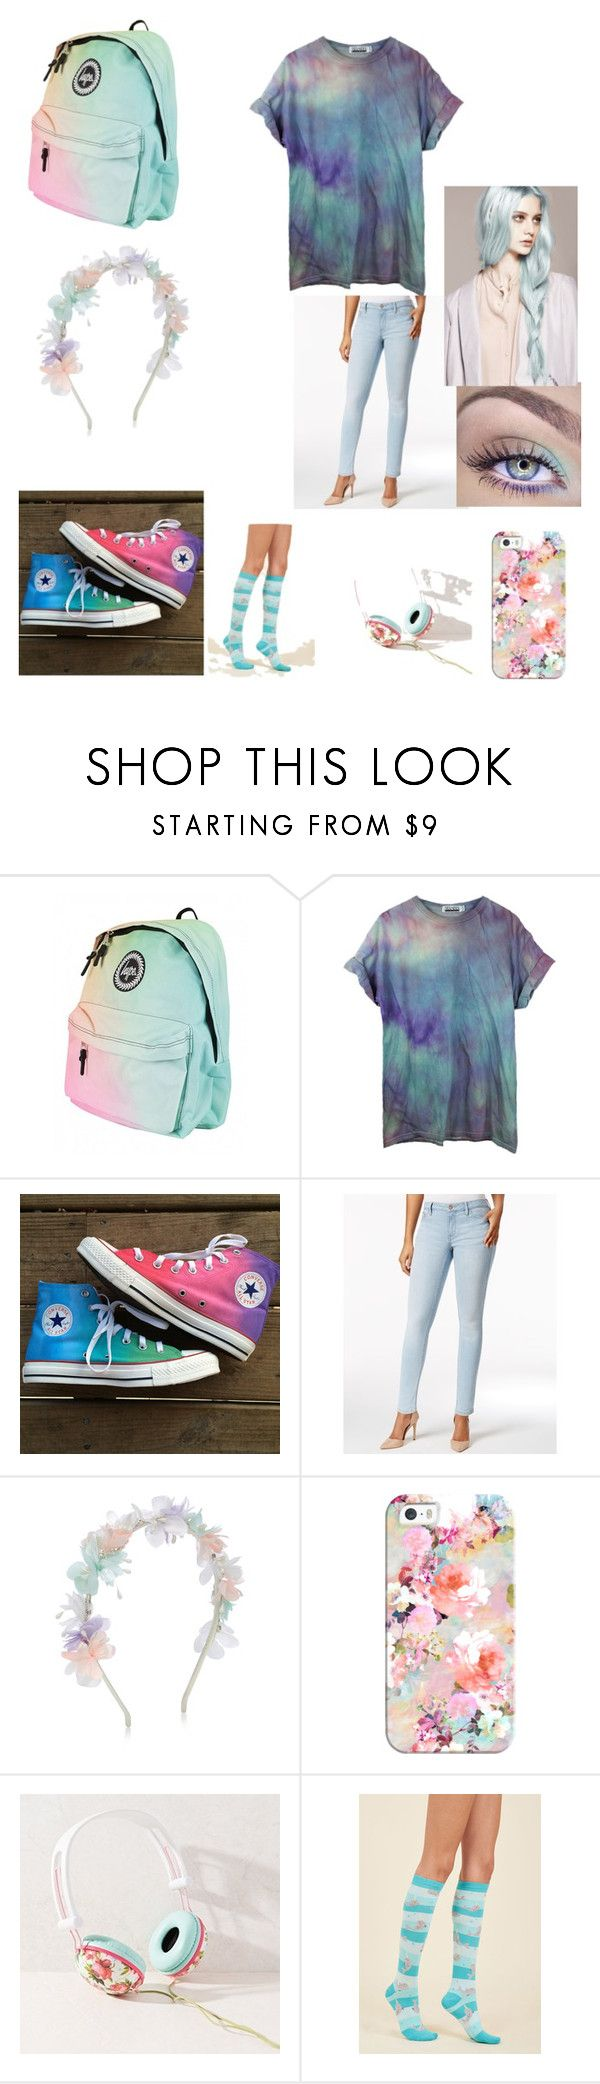 """pastel"" by coolanimal32553 ❤ liked on Polyvore featuring Converse, Calvin Klein Jeans, Monsoon, Casetify and Ankit"